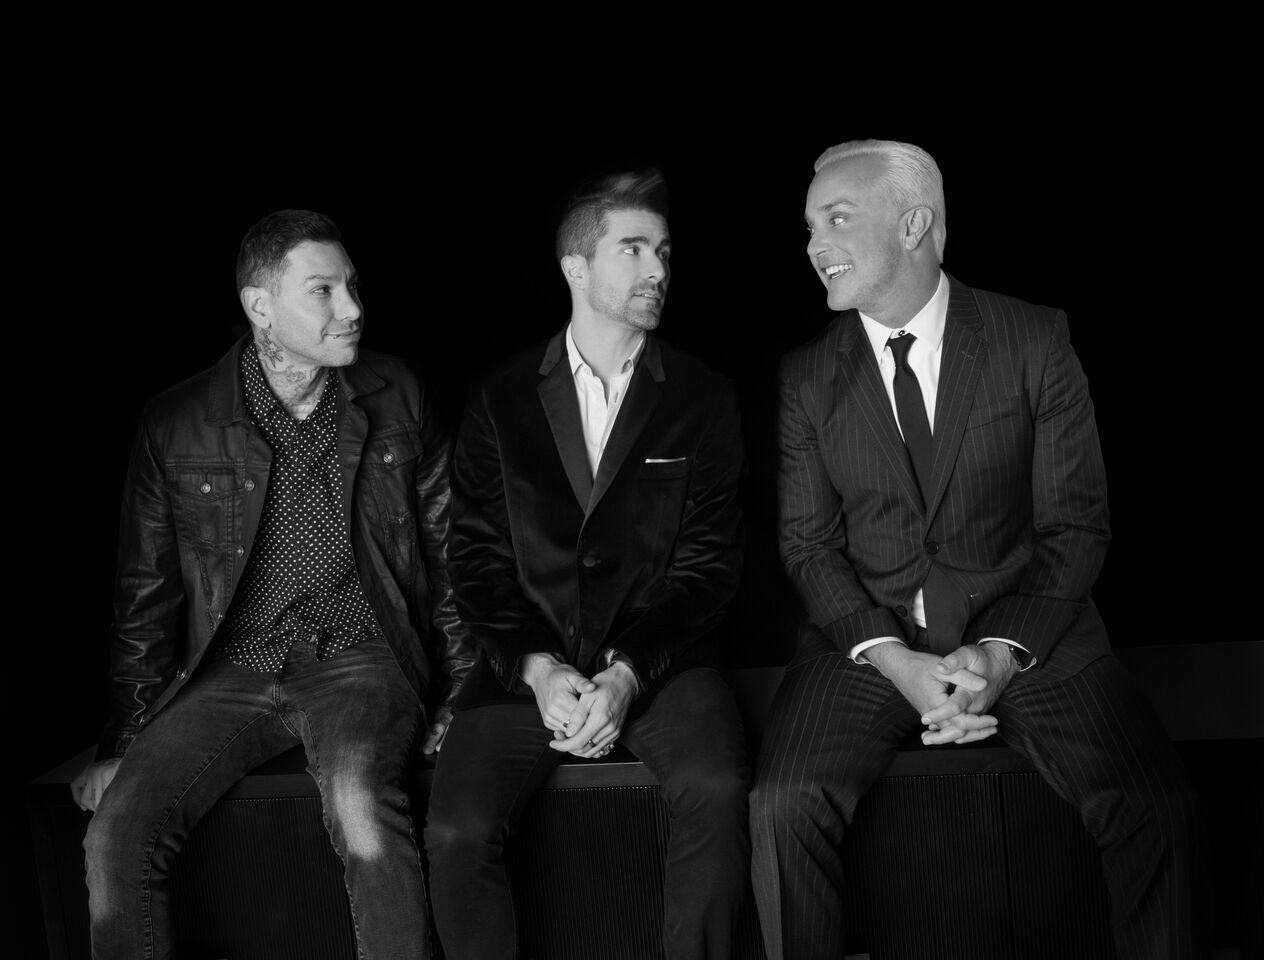 """It's all about perspective"" – John Feldmann on starting a new era for Goldfinger"